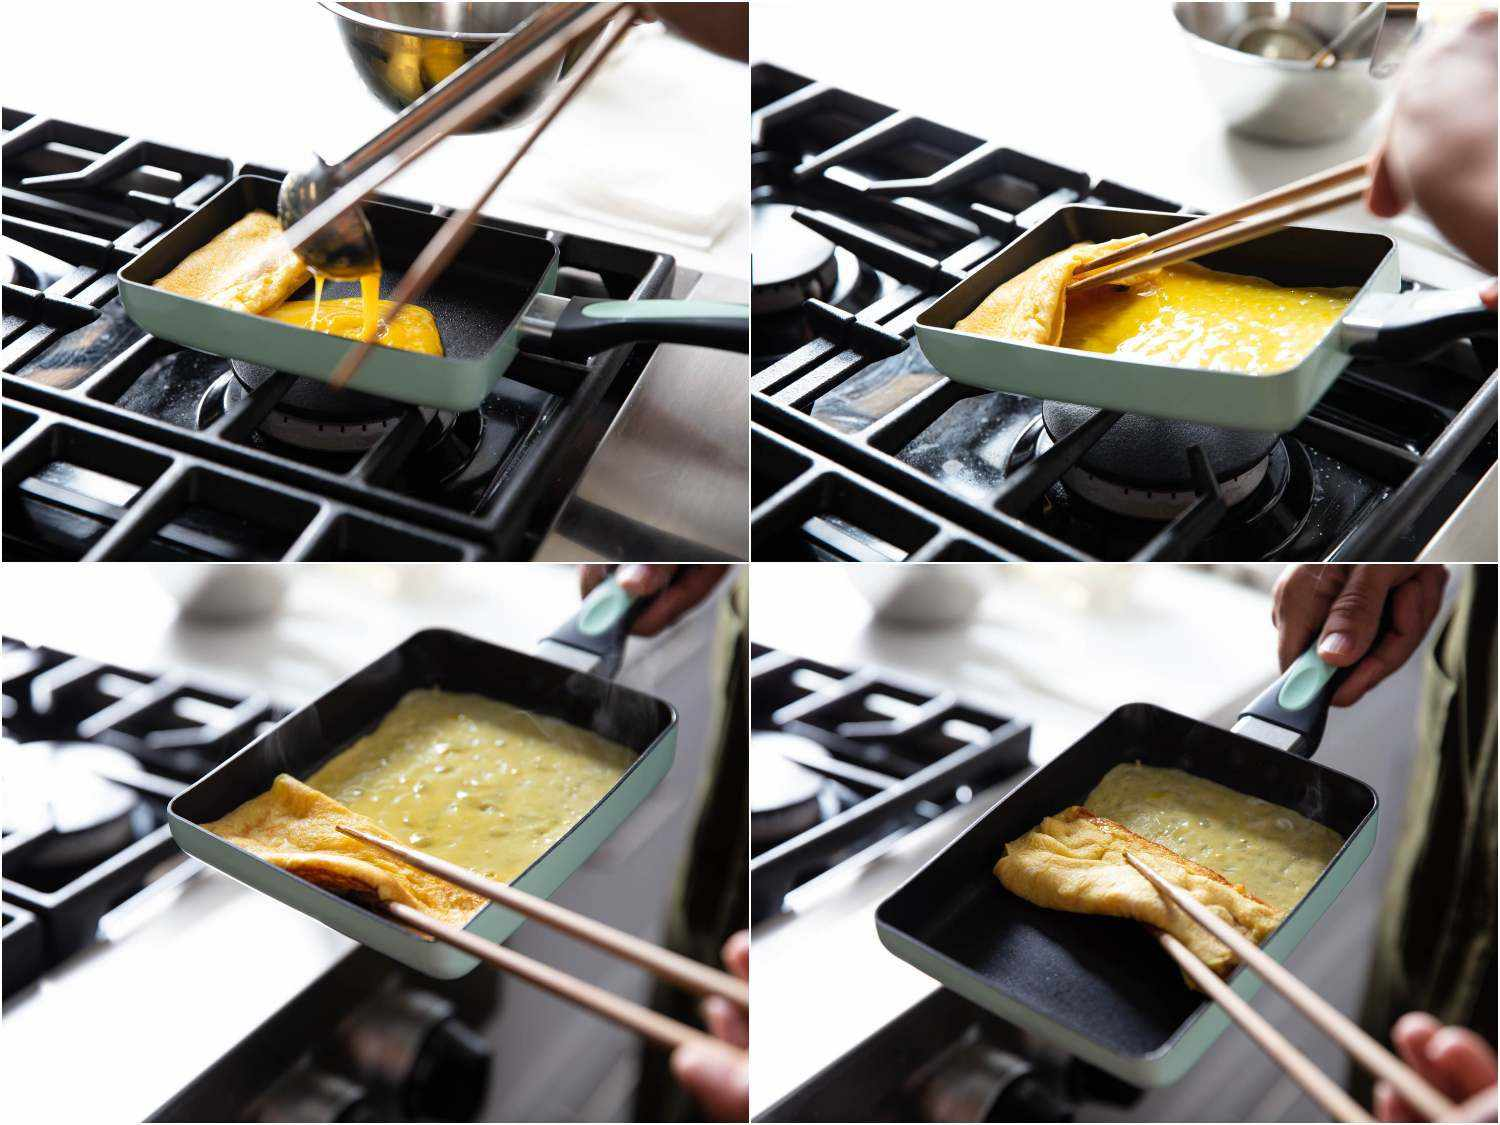 Step-by-step tamagoyaki process of four photos, showing a new layer of egg being poured into the rectangular pan, which already contains the previously rolled layers; the new egg is spread all around and under the existing roll of cooked egg, then it is all rolled up together to make a thicker roll.